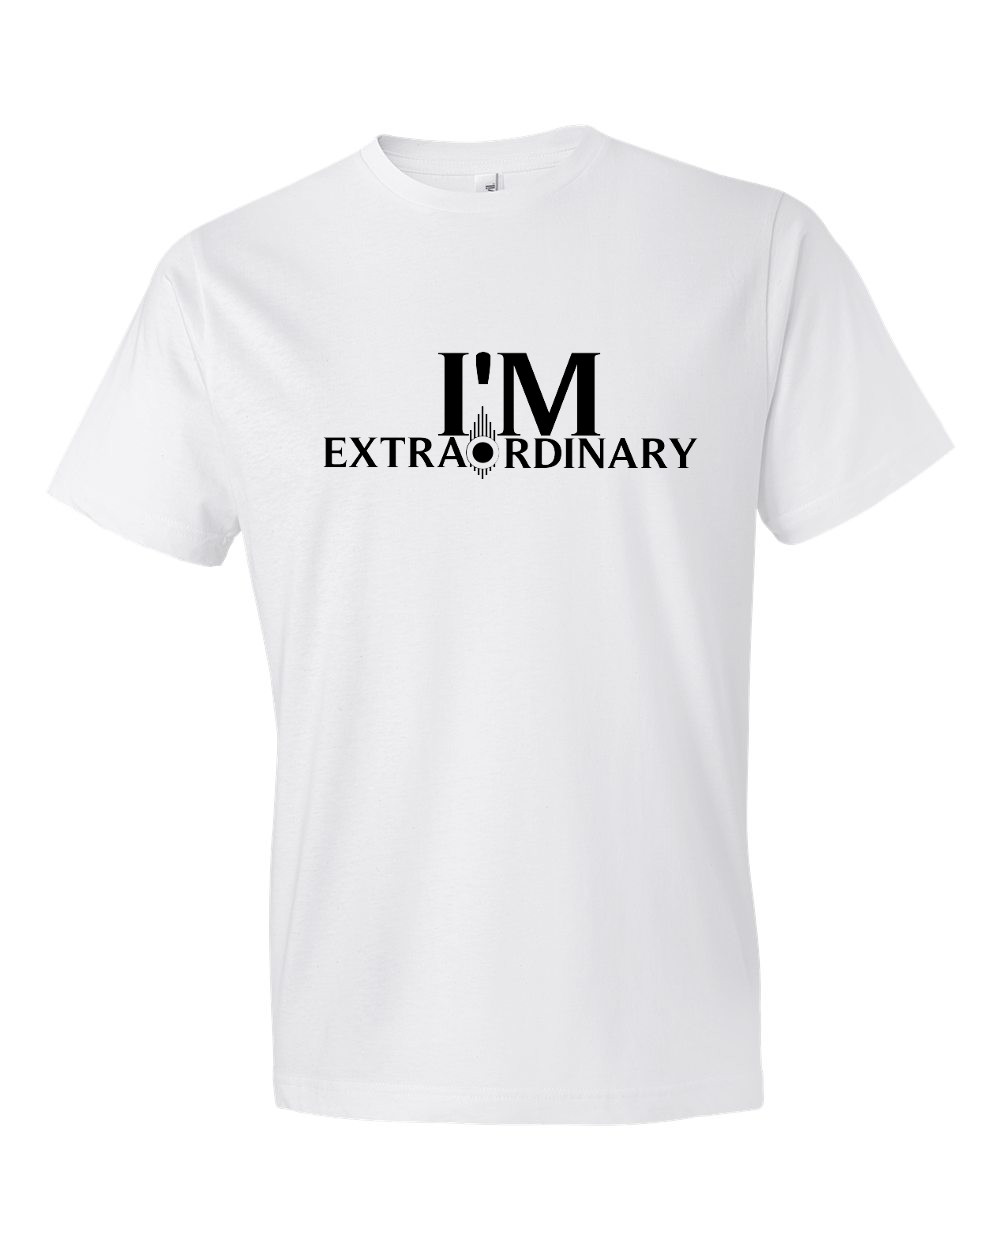 I'M Extraordinary T-Shirt